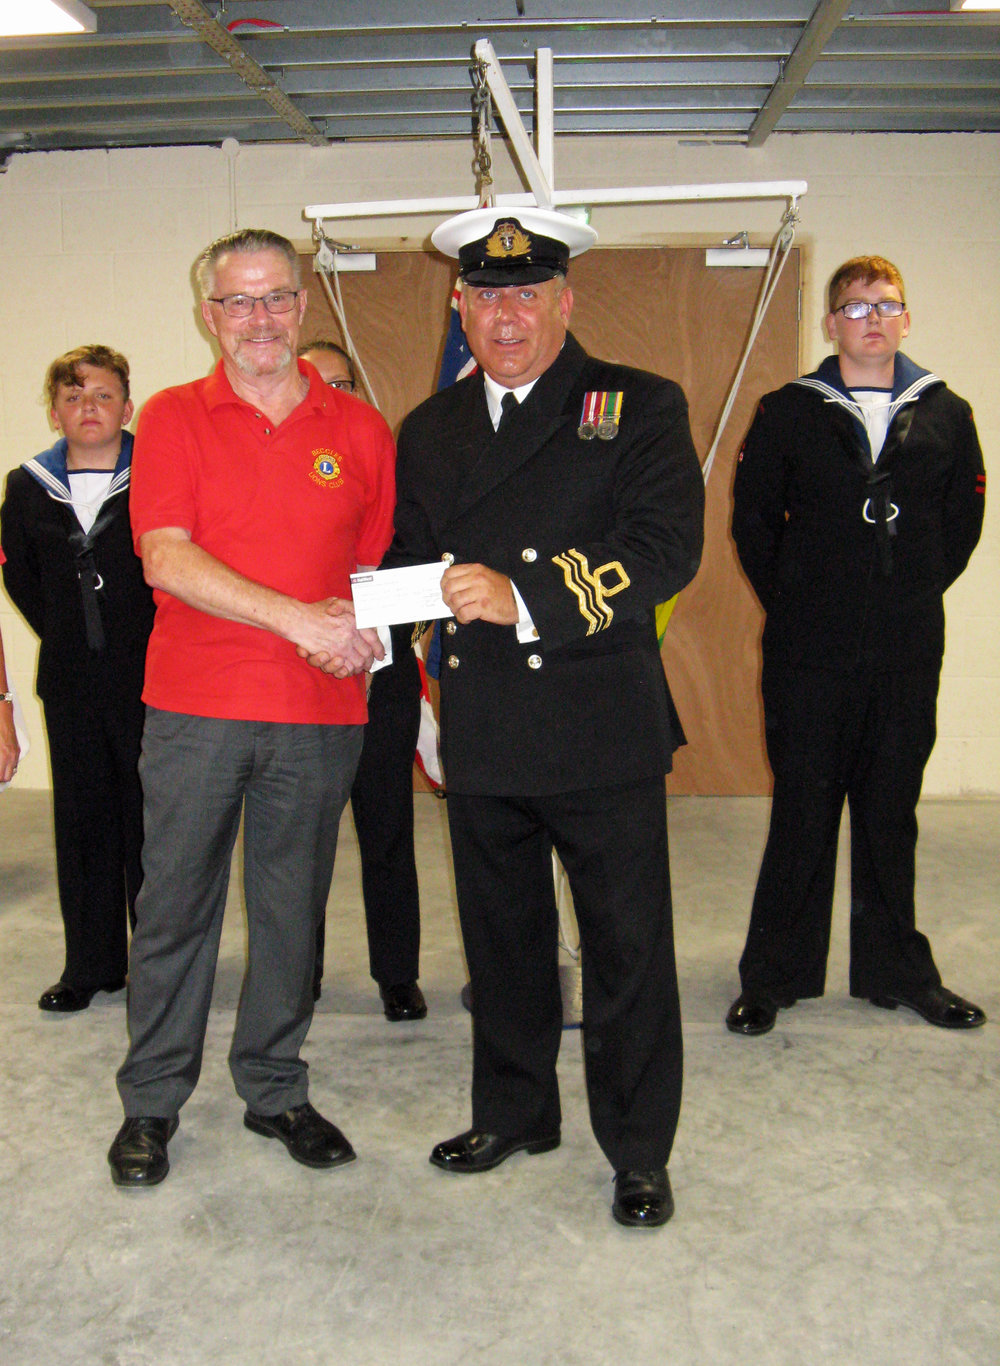 Lt.Cdr. Joe Meadows RNR thanking IPP Chris for cheque from Beccles Lions.